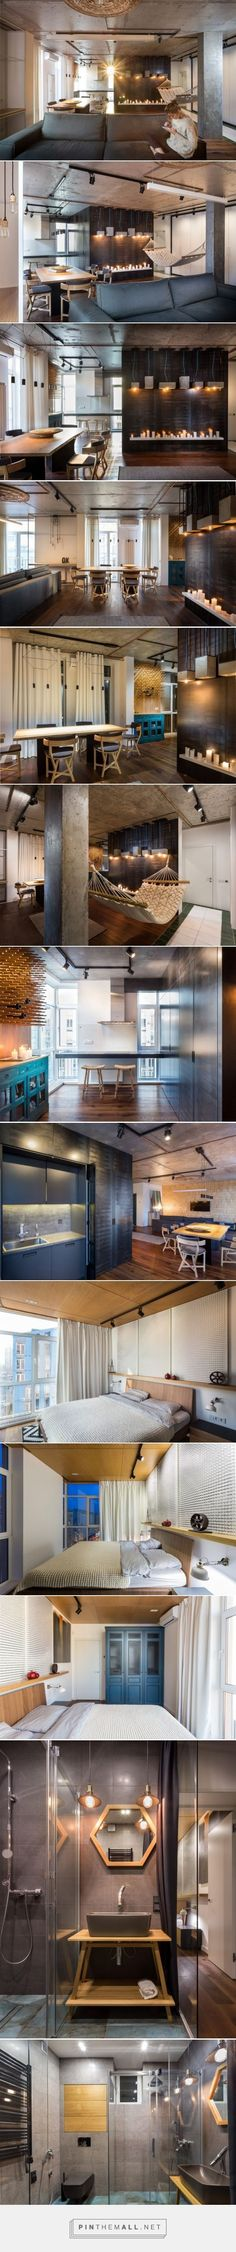 True Apartment by Svoya Studio | HomeAdore - created via pinthemall.net